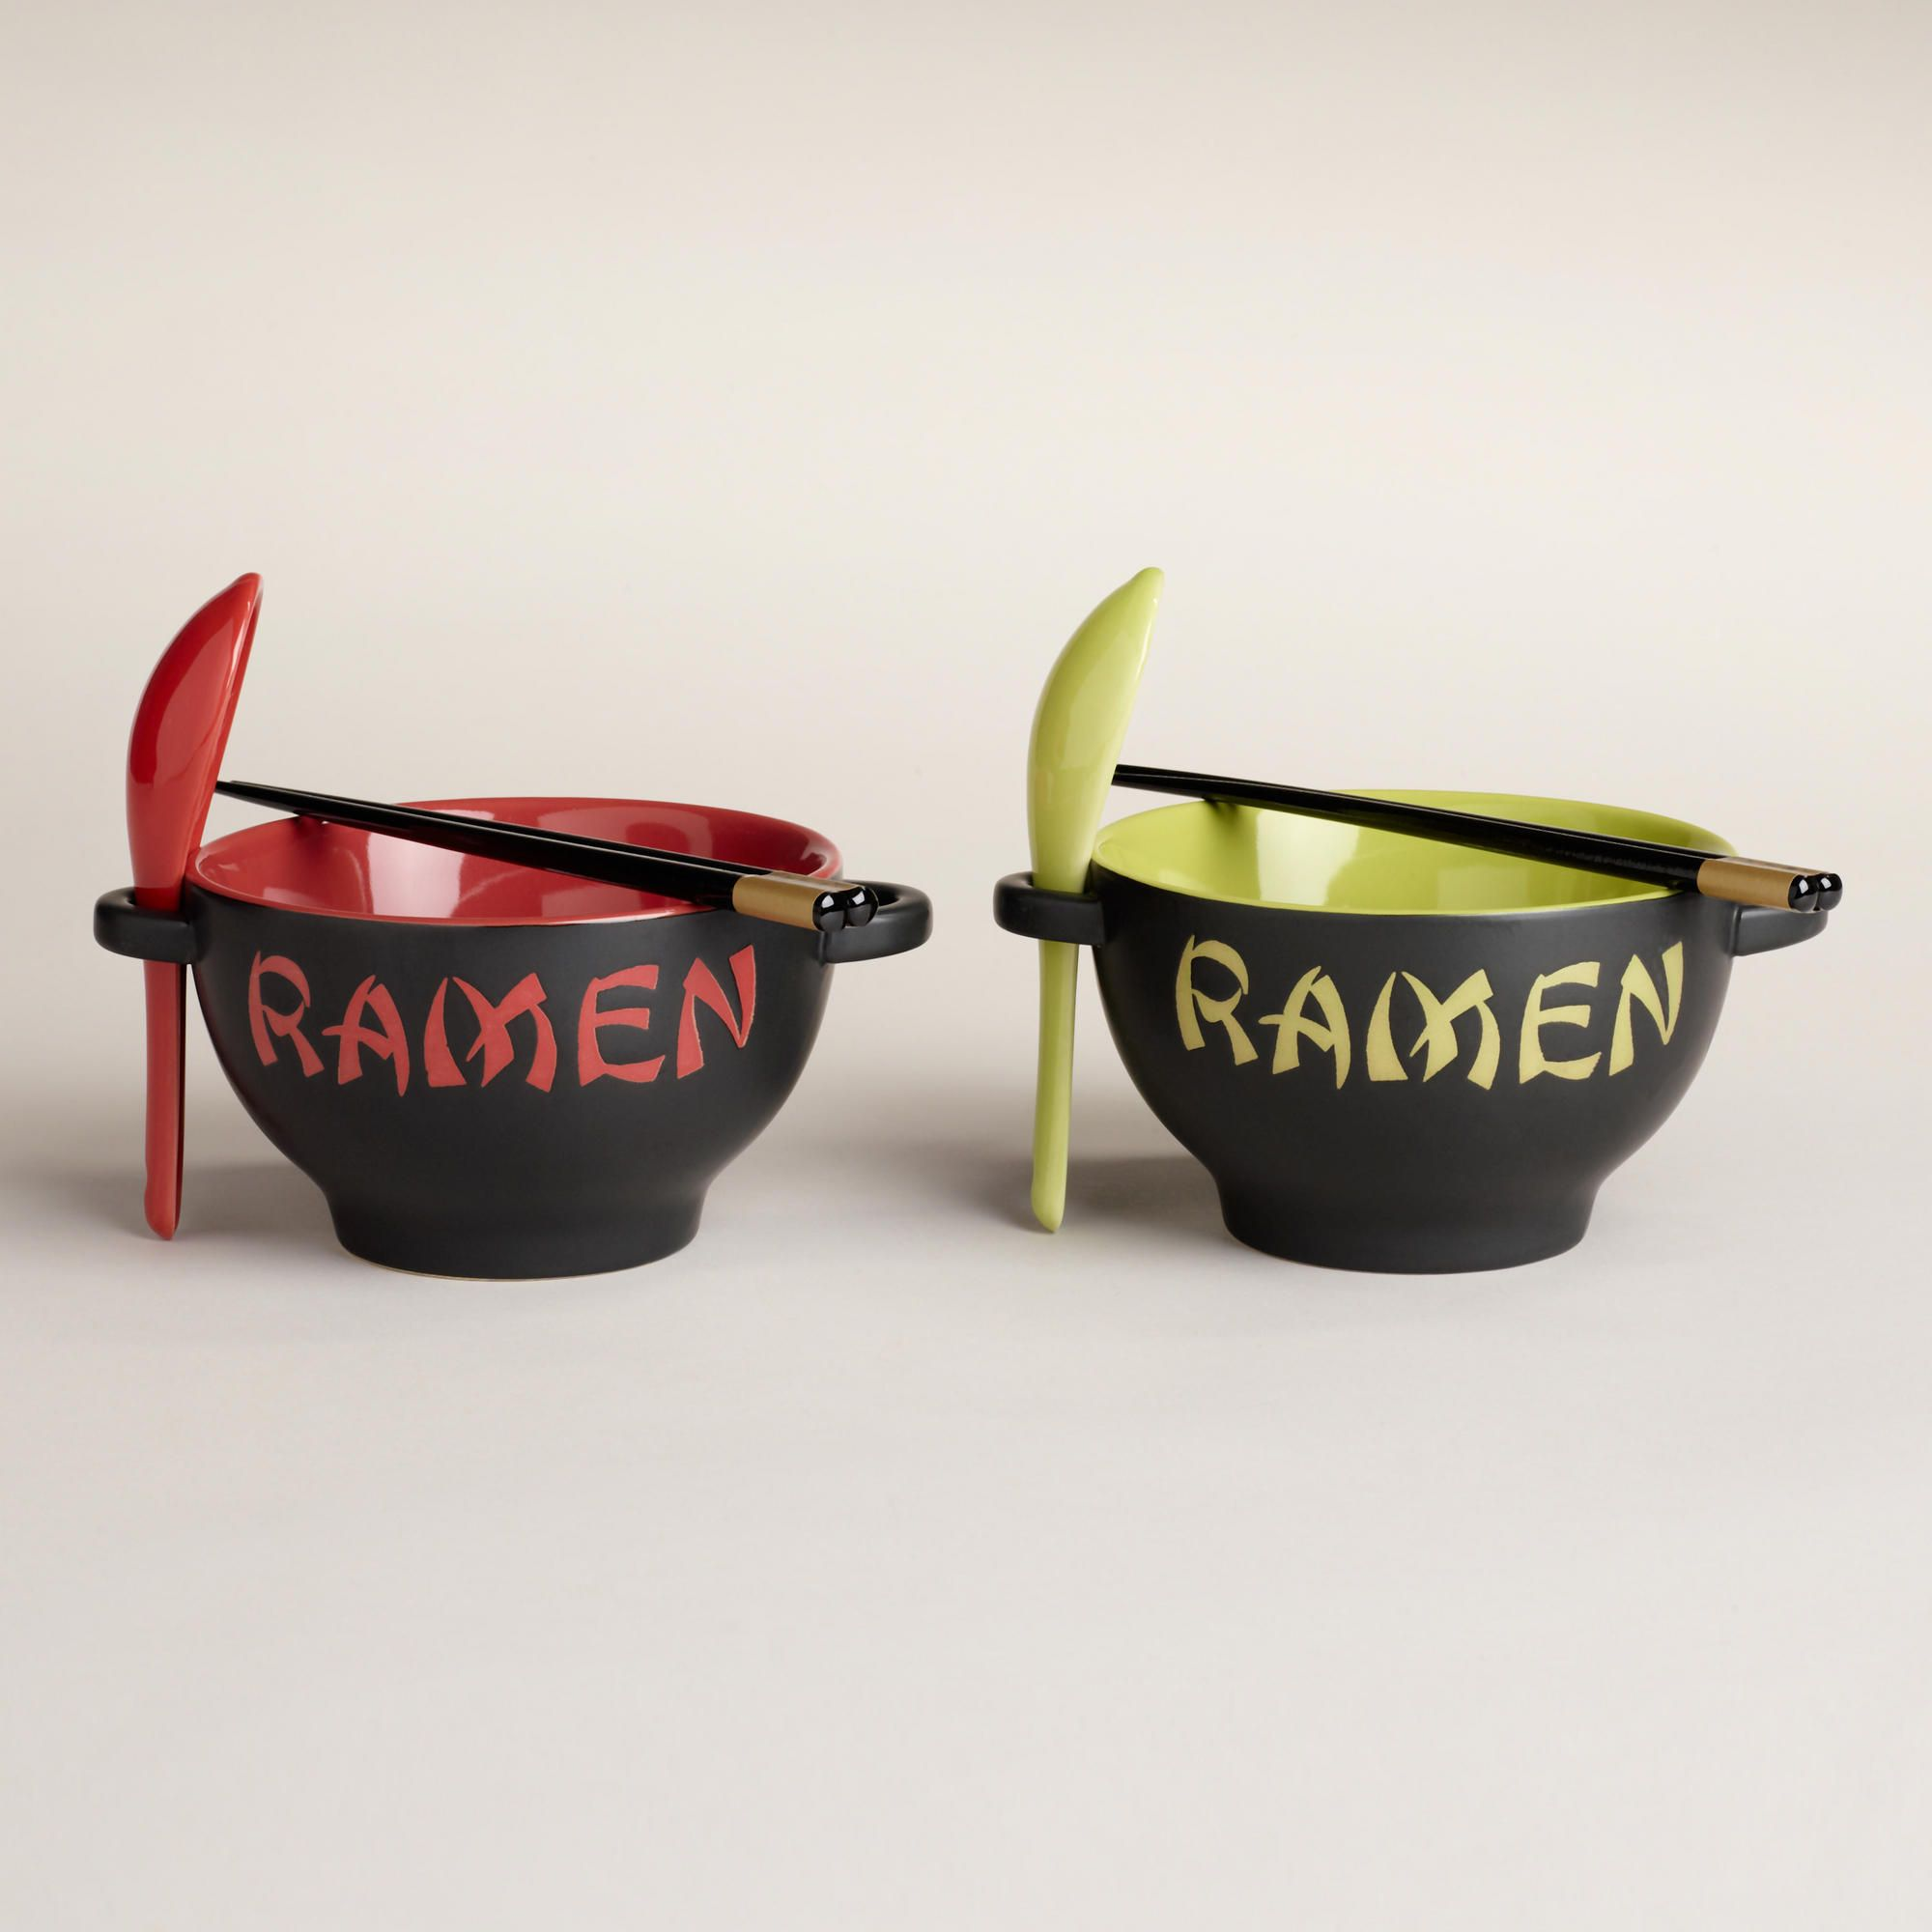 Ramen Noodle Bowl Going To Give One Of These My Son With His High School Graduation Gift I Could Have Used In College Also Inexpensive